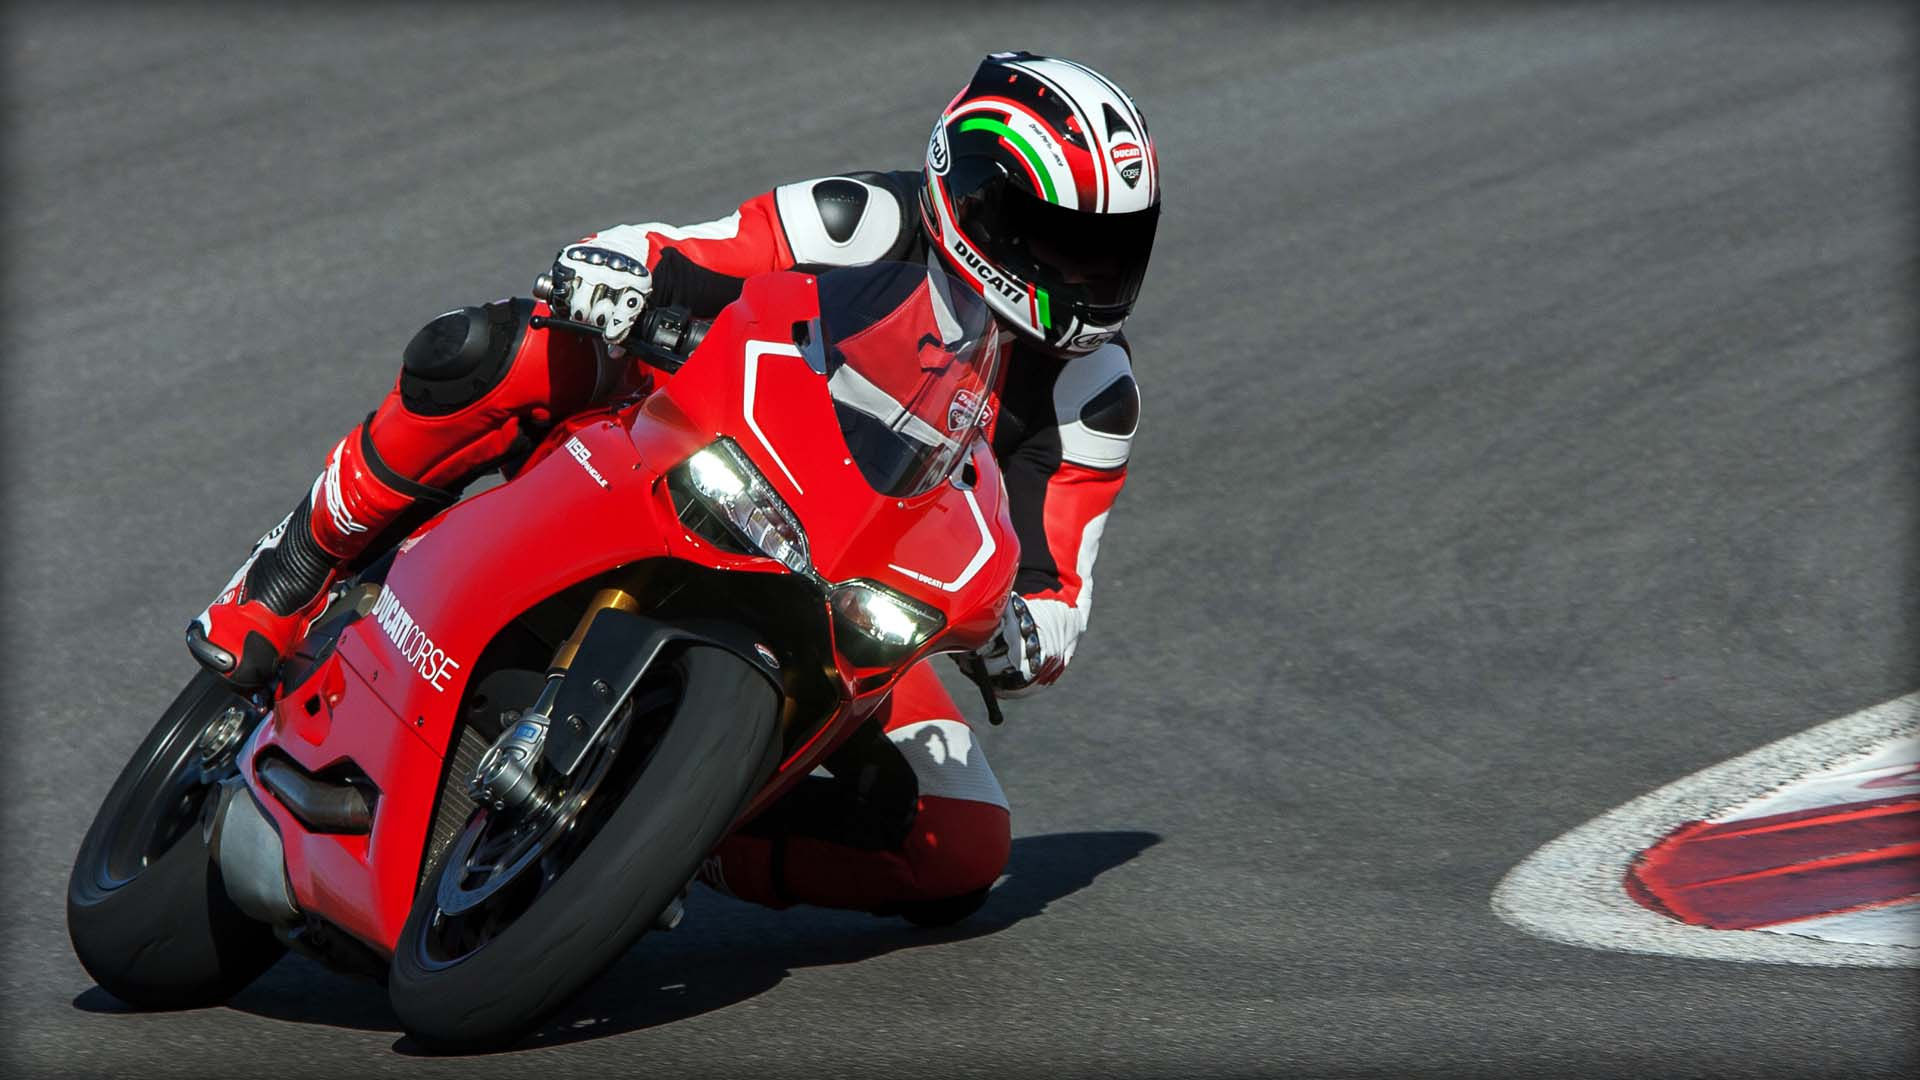 2014 Ducati  | Ducati 1199 Panigale R - Leading The Way